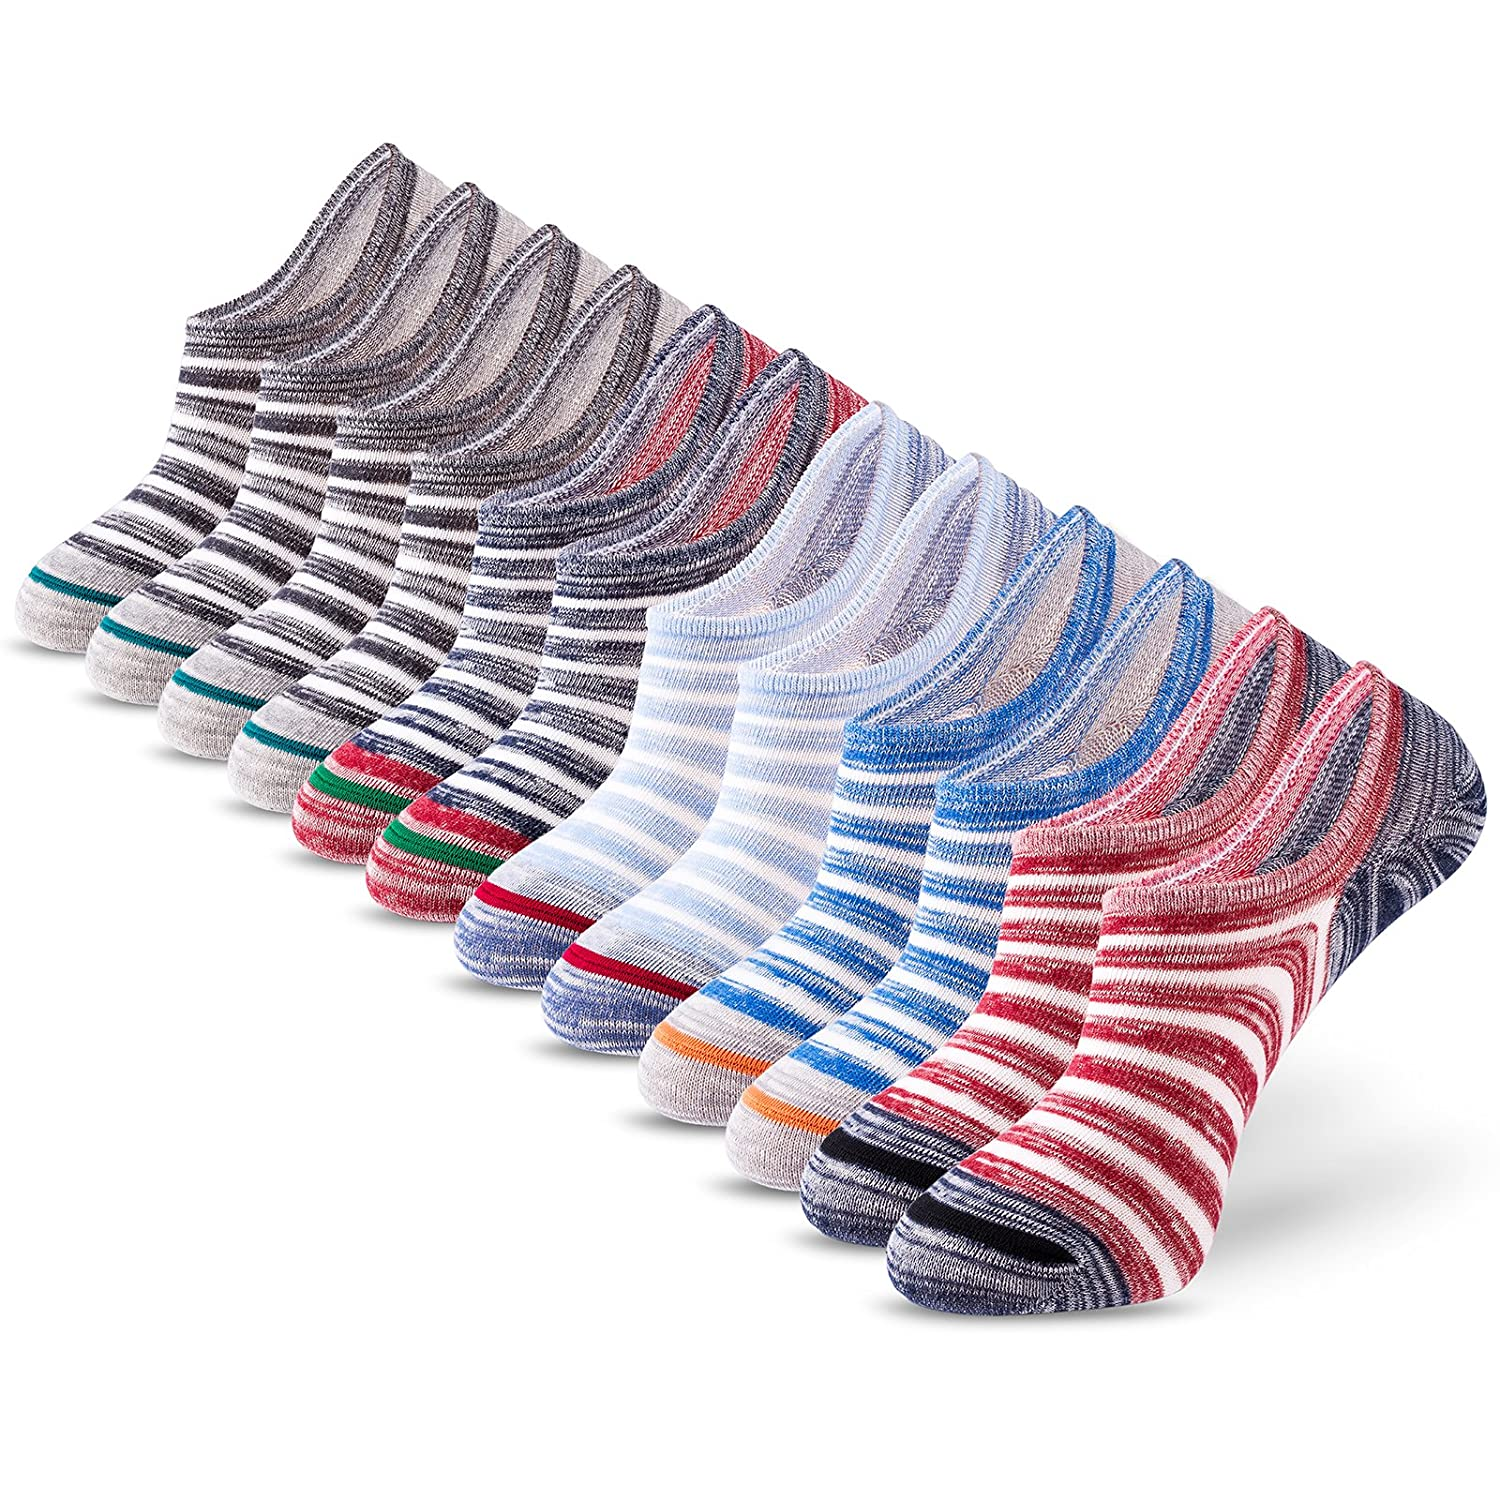 No Show Socks Mens IDEGG Men's Cotton Casual Low Cut Anti-slid Athletic Socks with Non Slip Grip